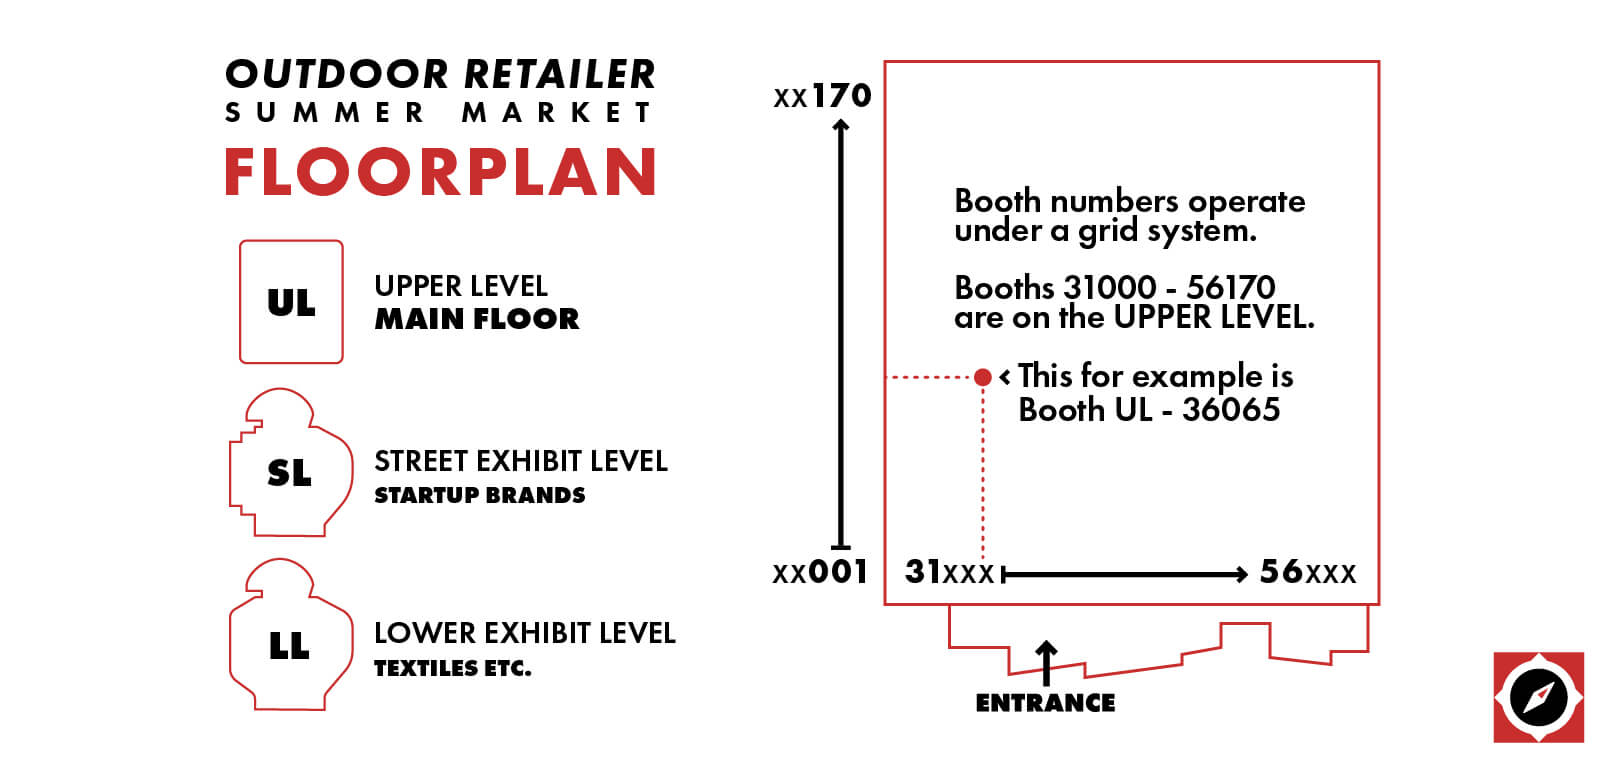 Outdoor Retailer Summer Market Floor Plan System